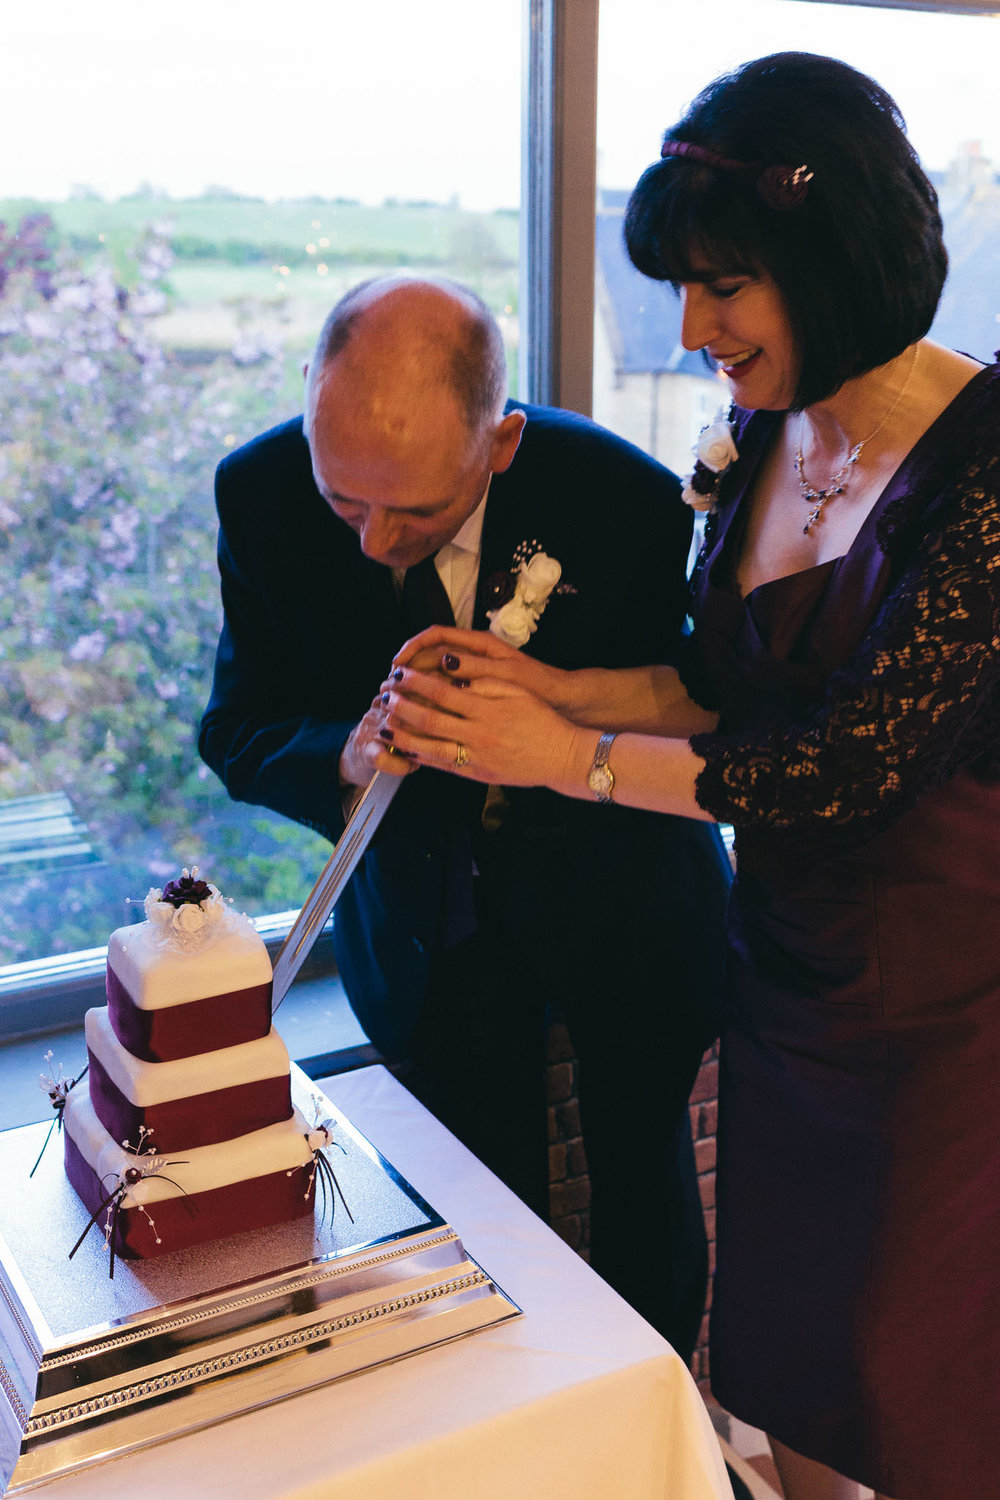 Bride and groom cut cake with sword